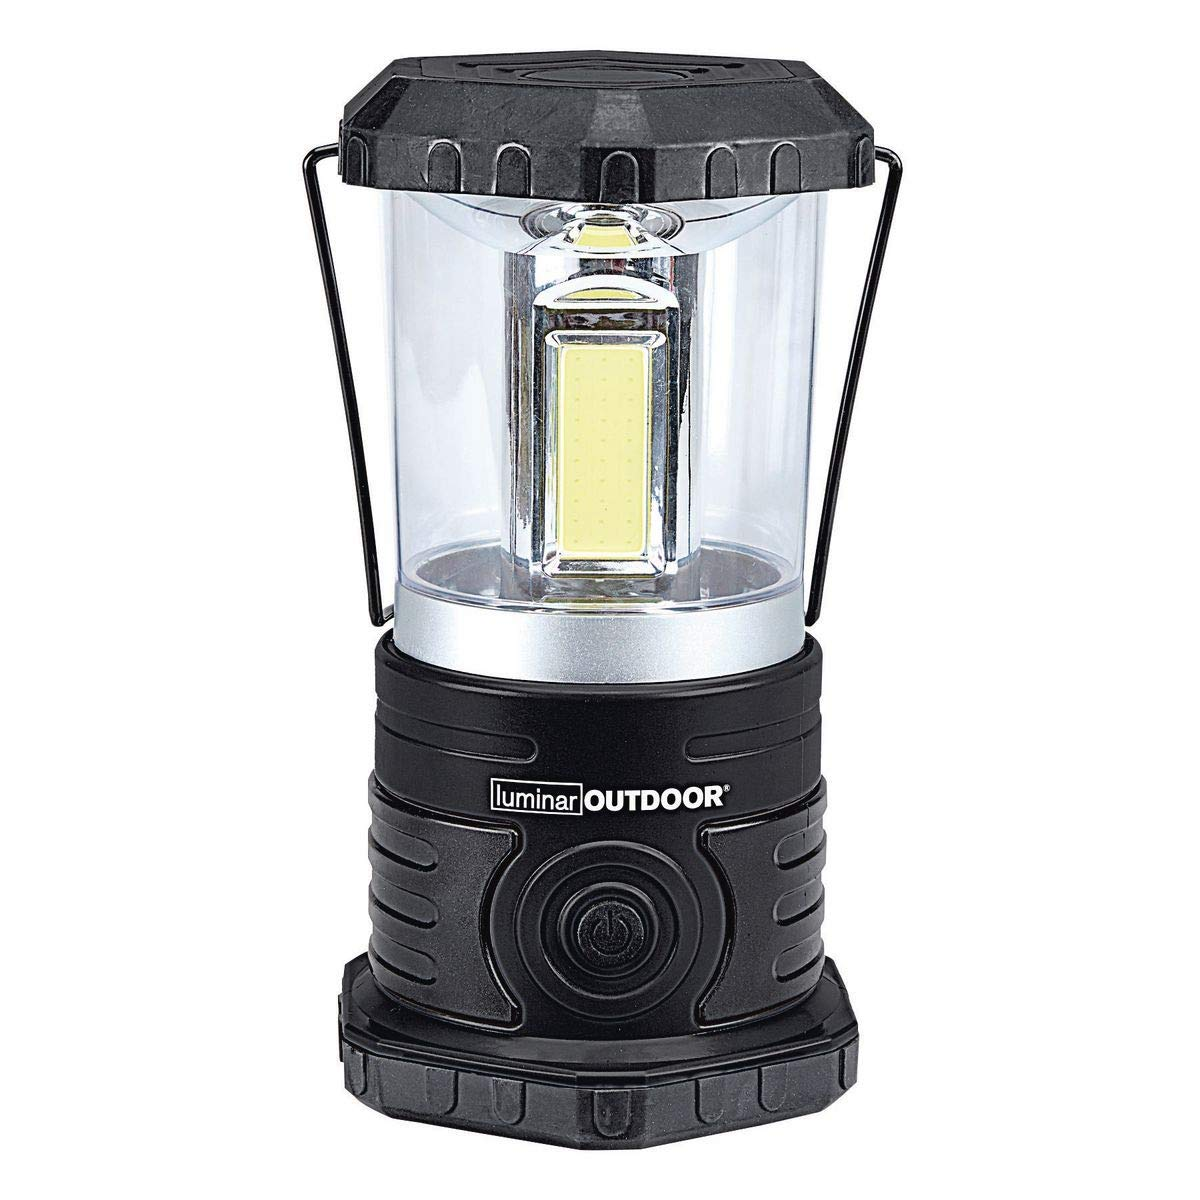 1250 Lumen Ultra-Brite Portable Lantern with LED technology for Camping, Hunting and Emergency Use